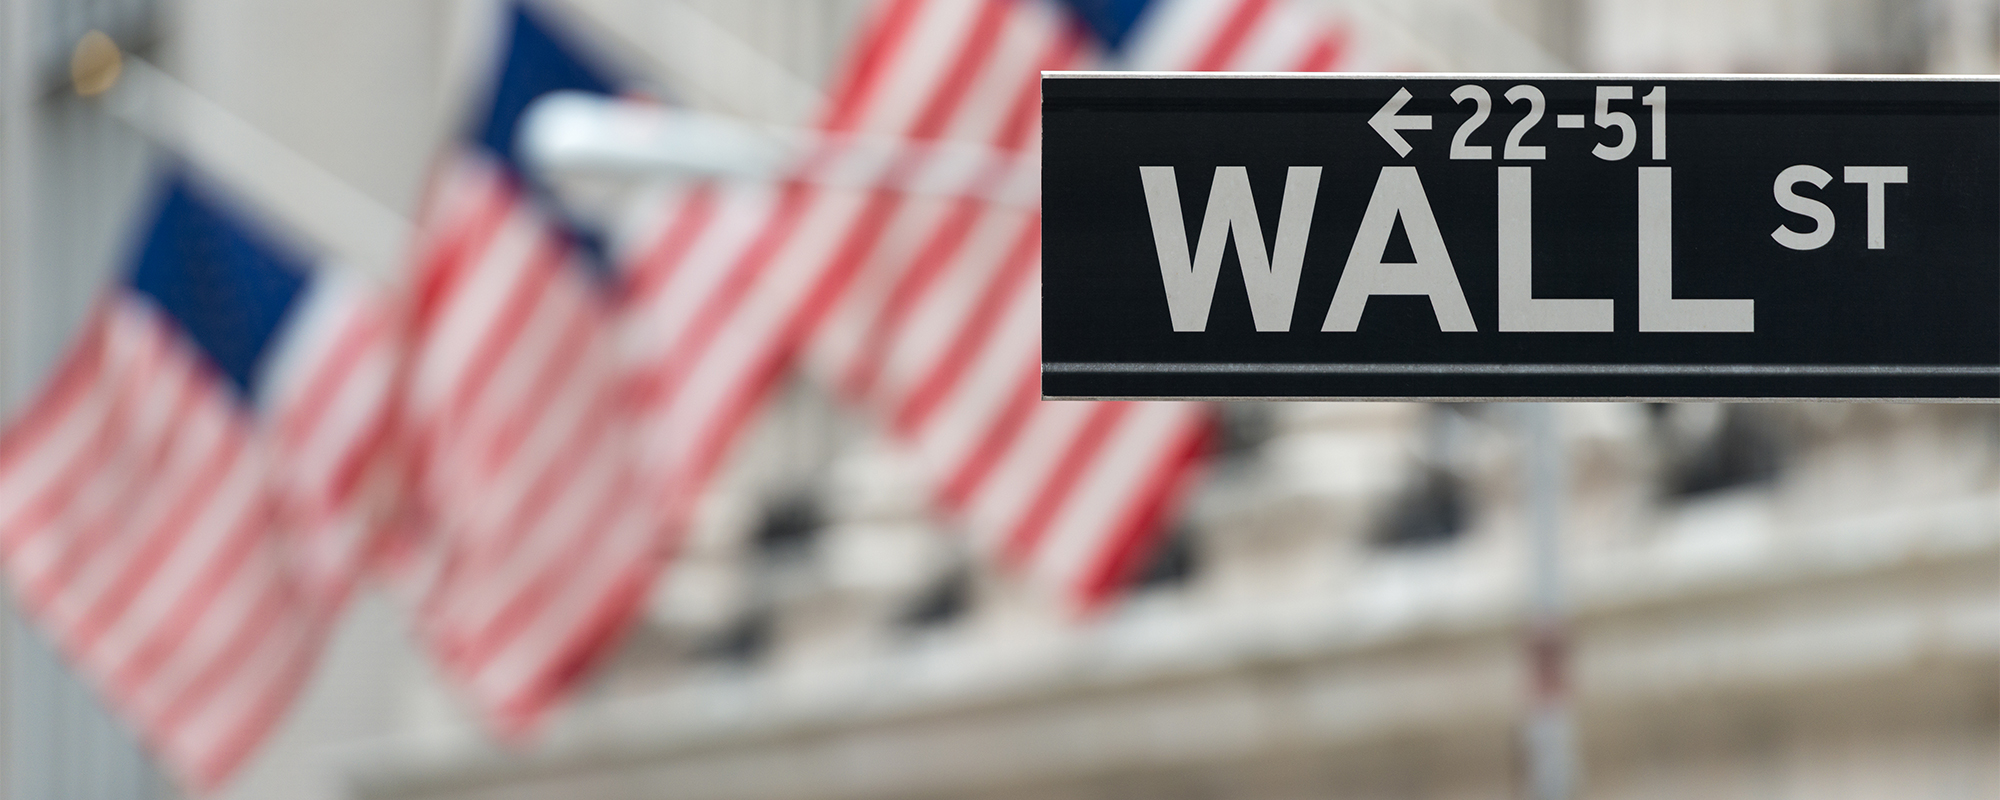 Wall Street street sign in front of American flags displayed on a building